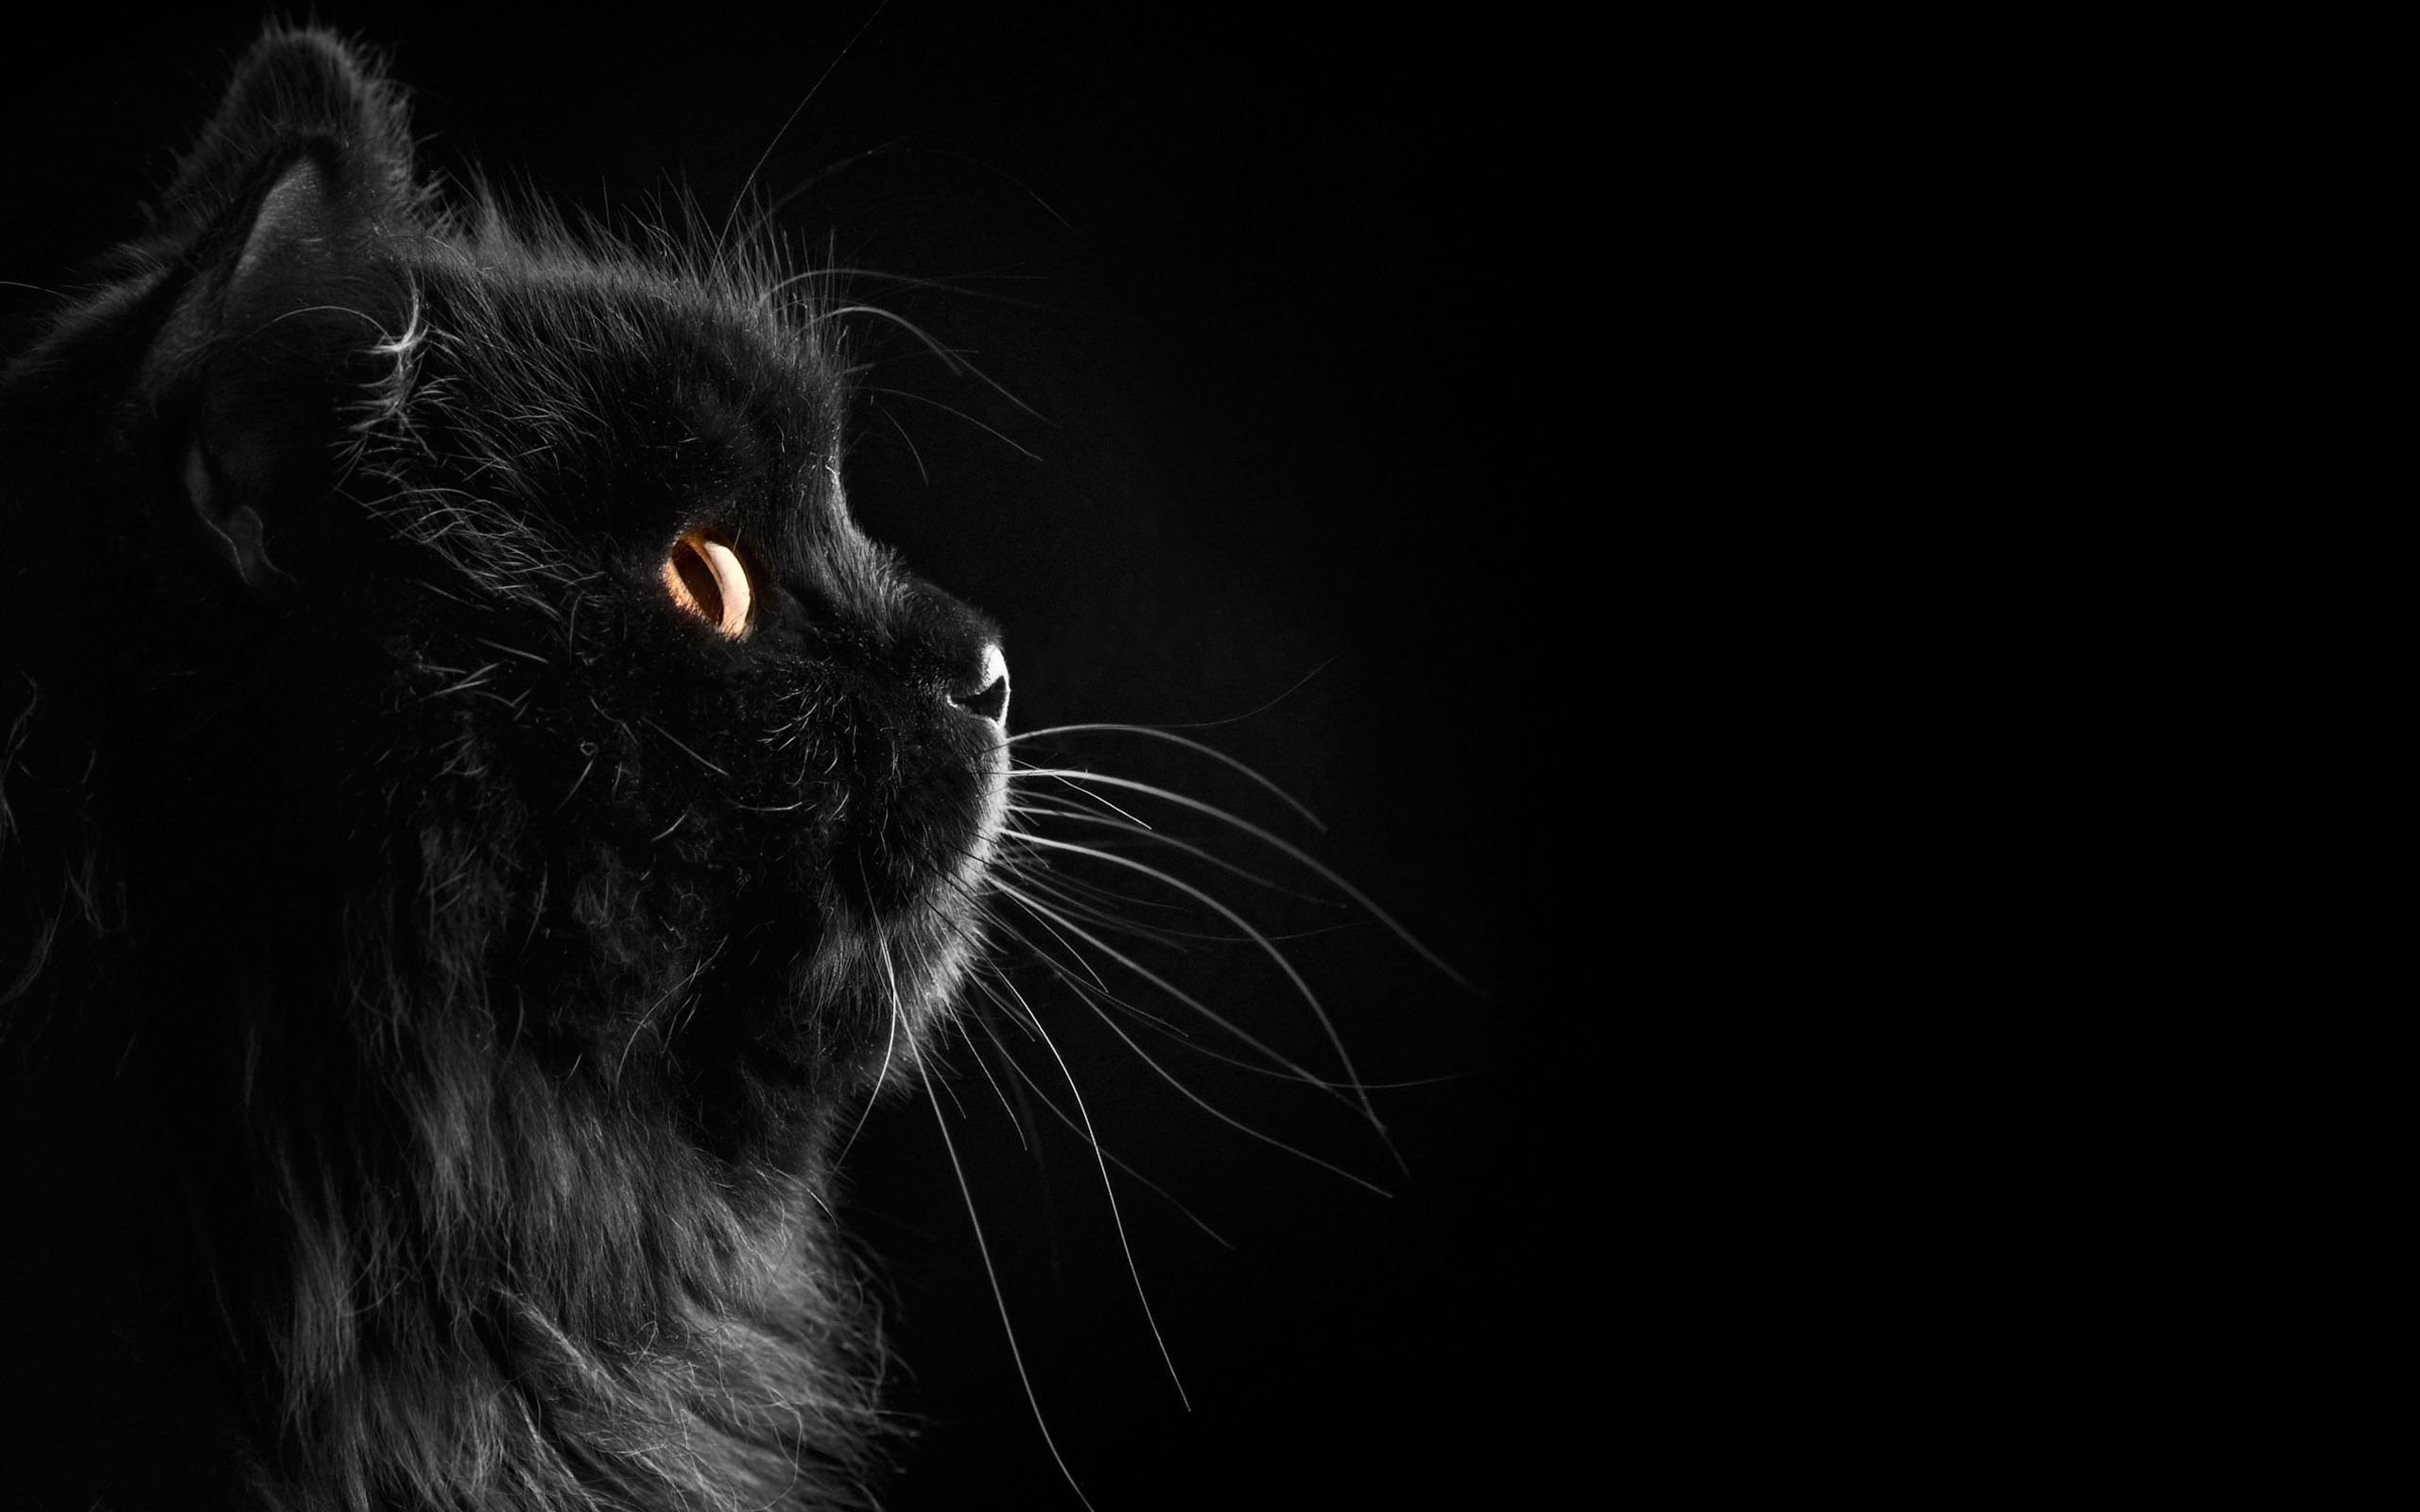 Persian cat wallpapers animals library hd wallpapers pinterest